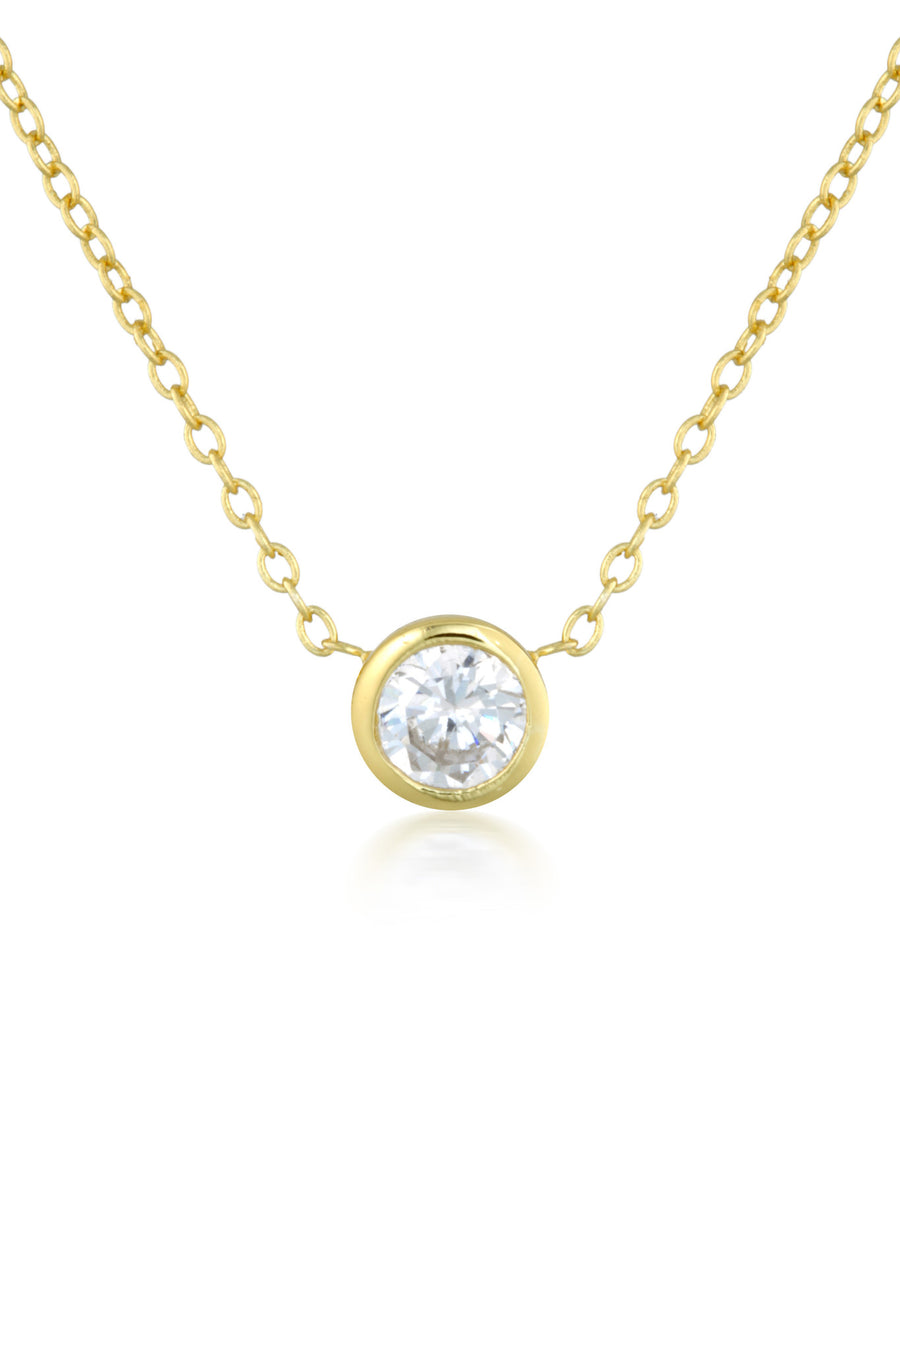 Myla Necklace in Gold - HER Empire Fashion Boutique Terrigal & Online